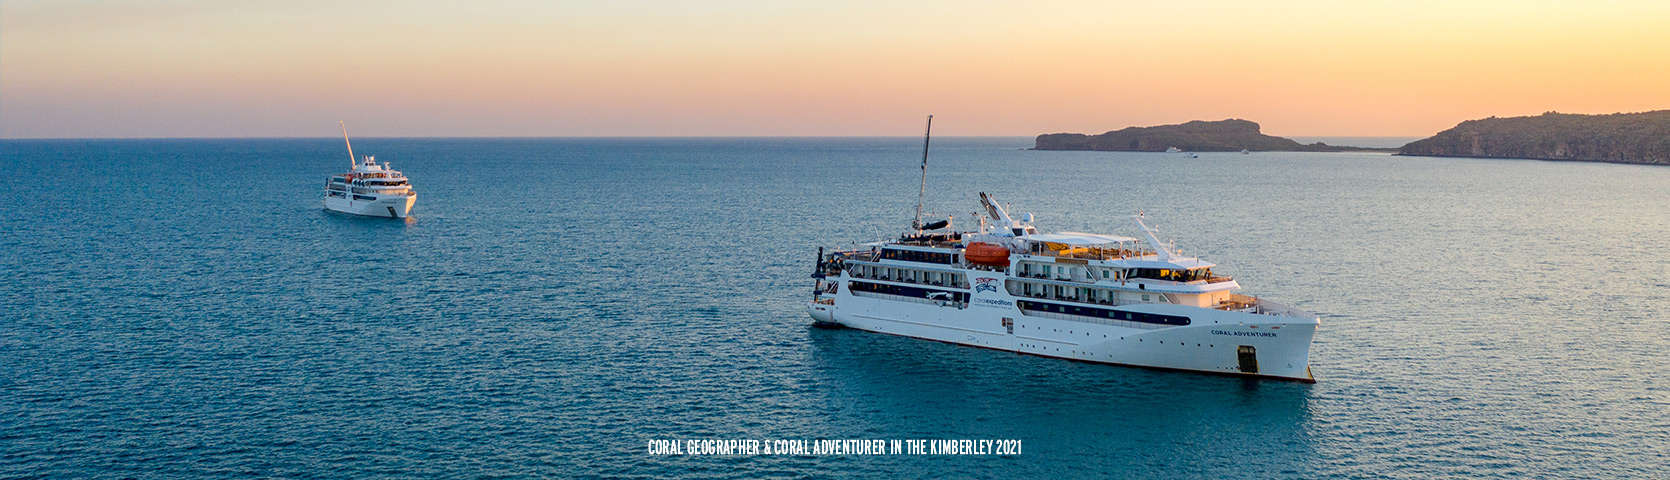 Coral-Geographer-&-Coral-Adventurer-in-the-Kimberley-2021-1